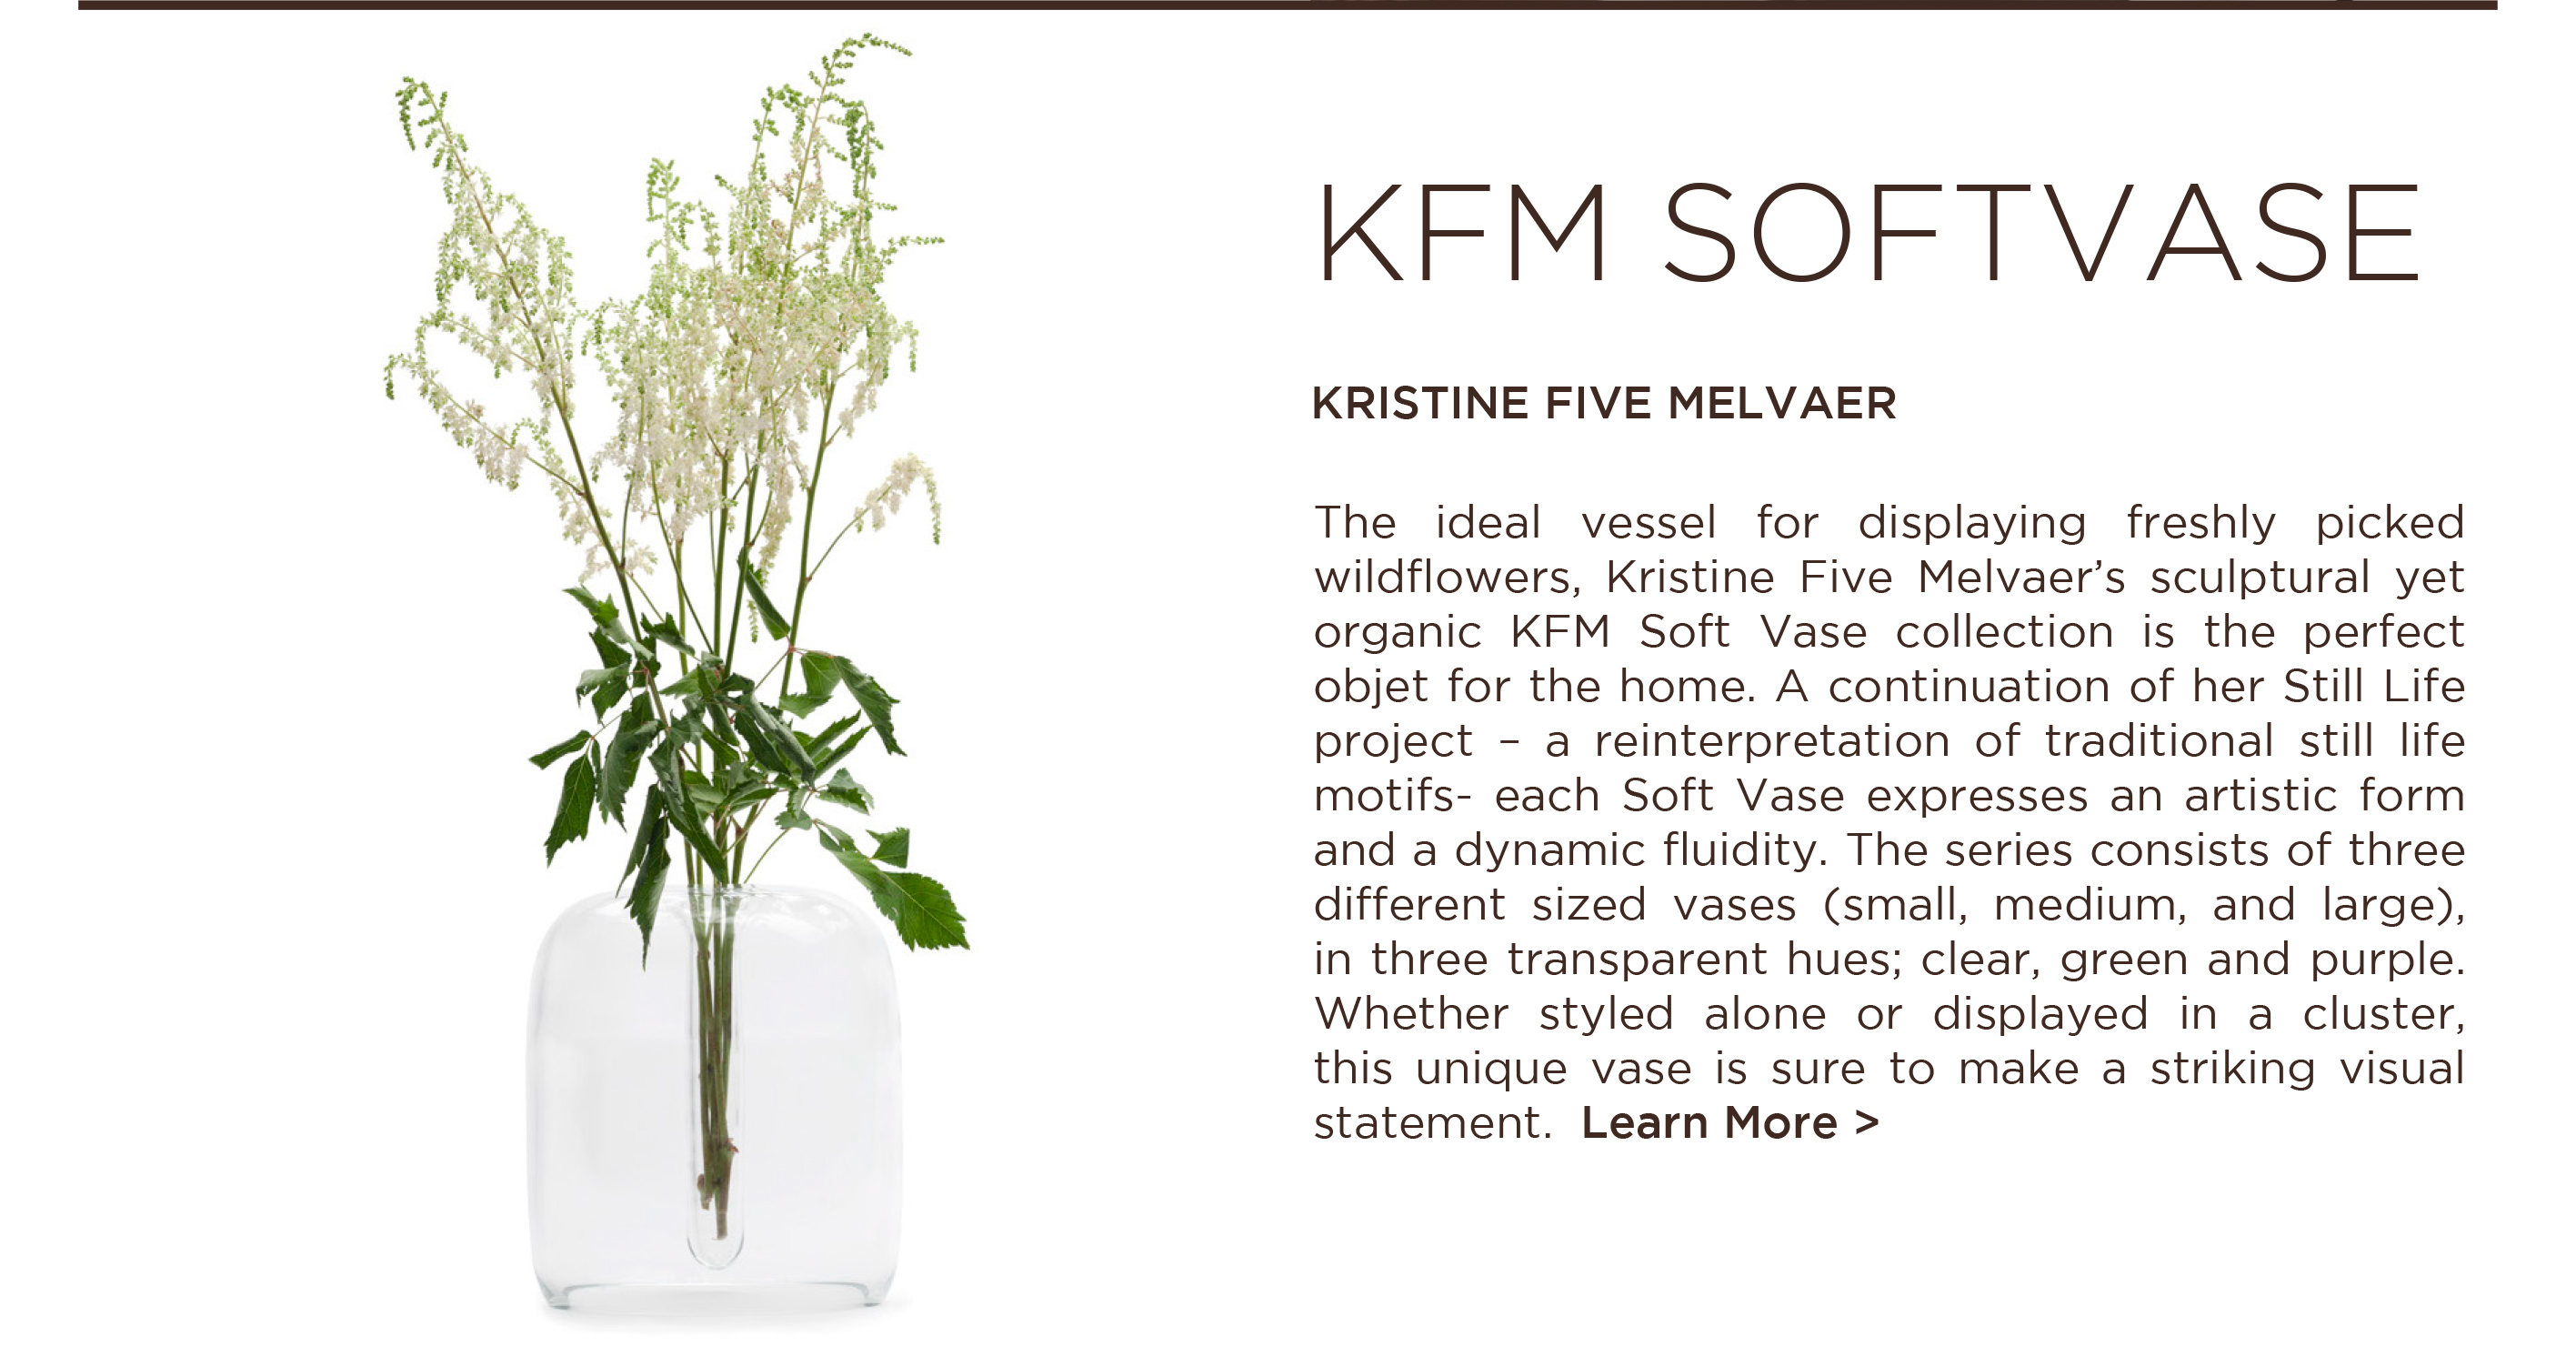 KFM softvase kristine five melvaer when objects work scandinavian luxury tabletop accessories vases suite ny